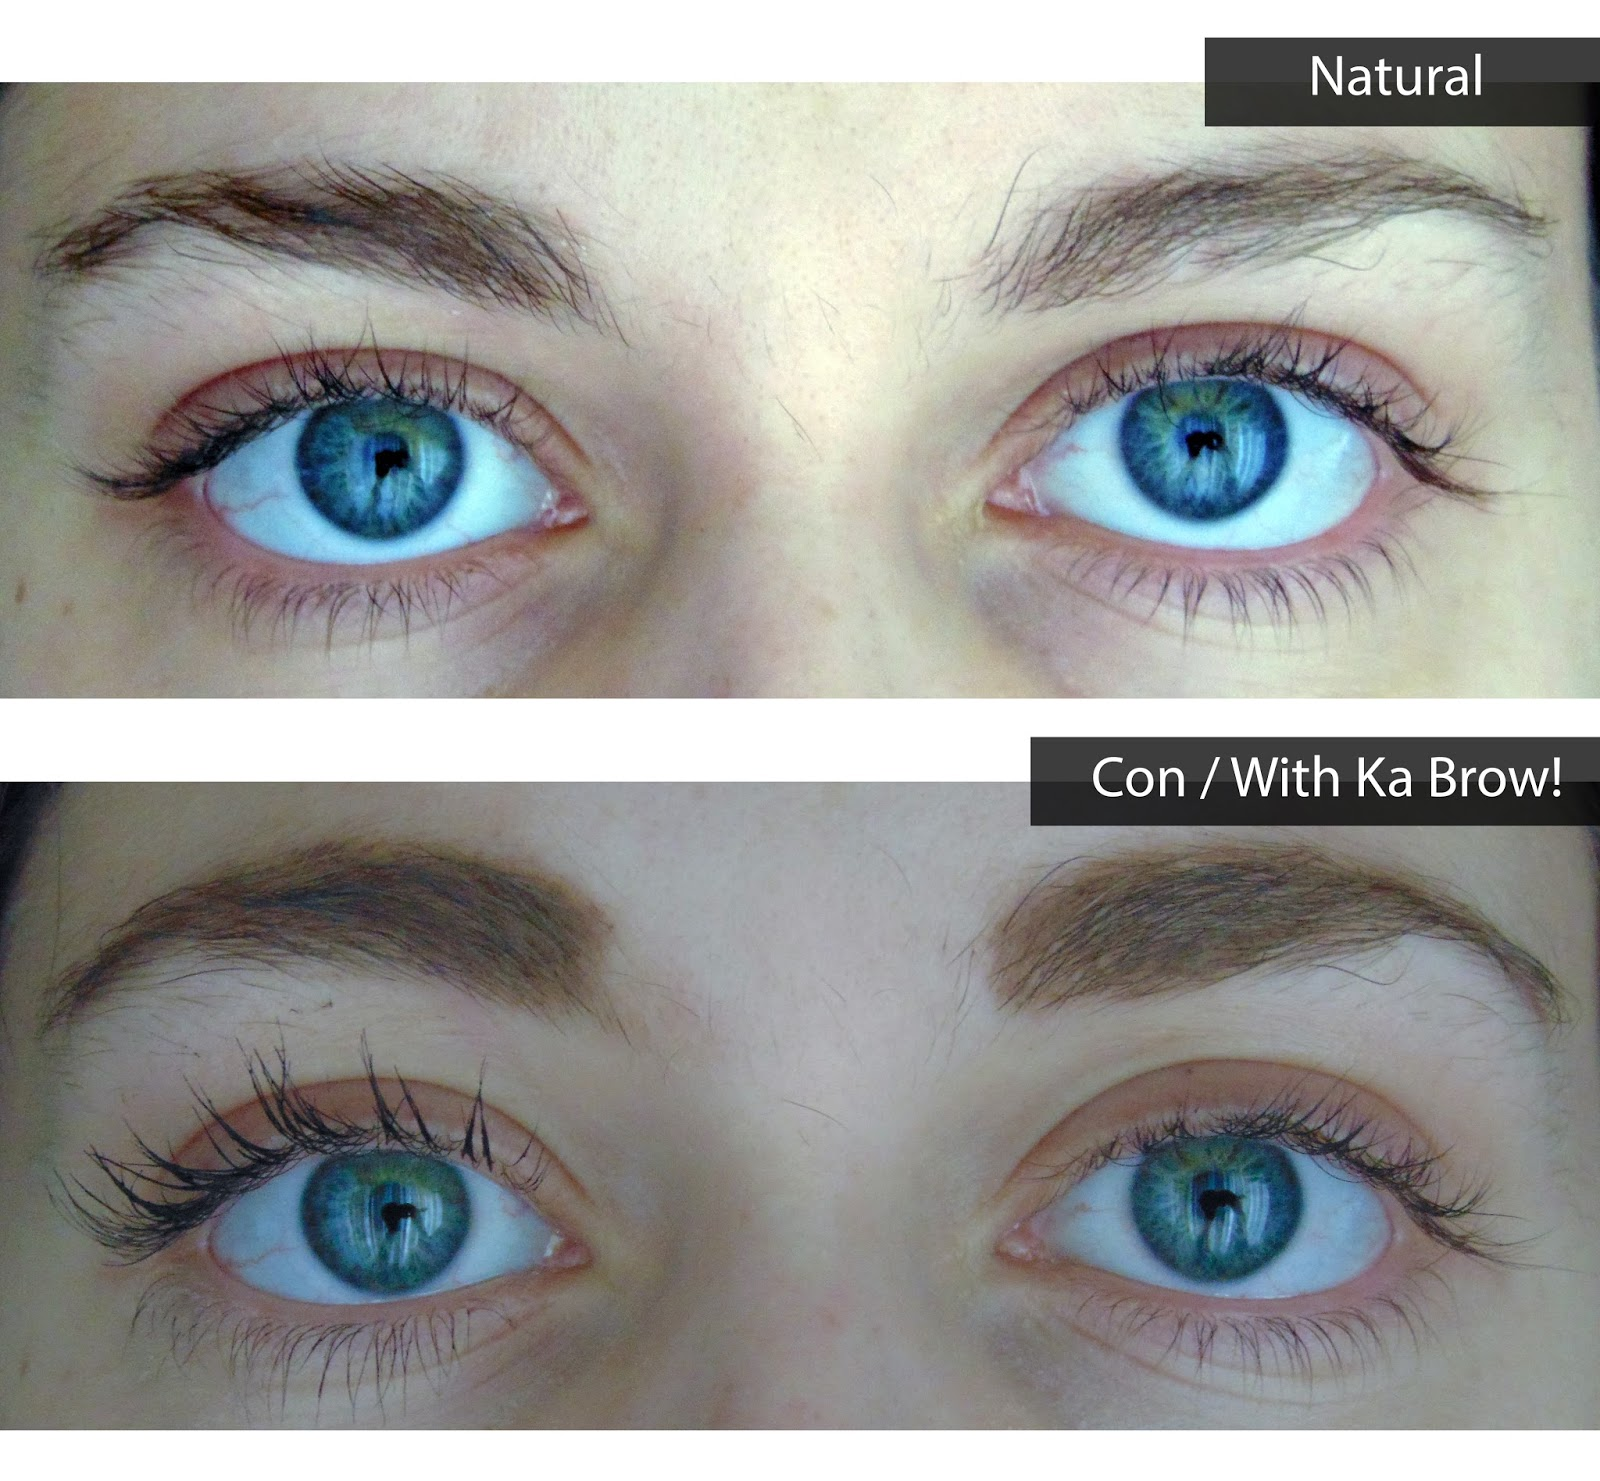 Review ka brow! brow gel before and after reseña gel cejas antes y después